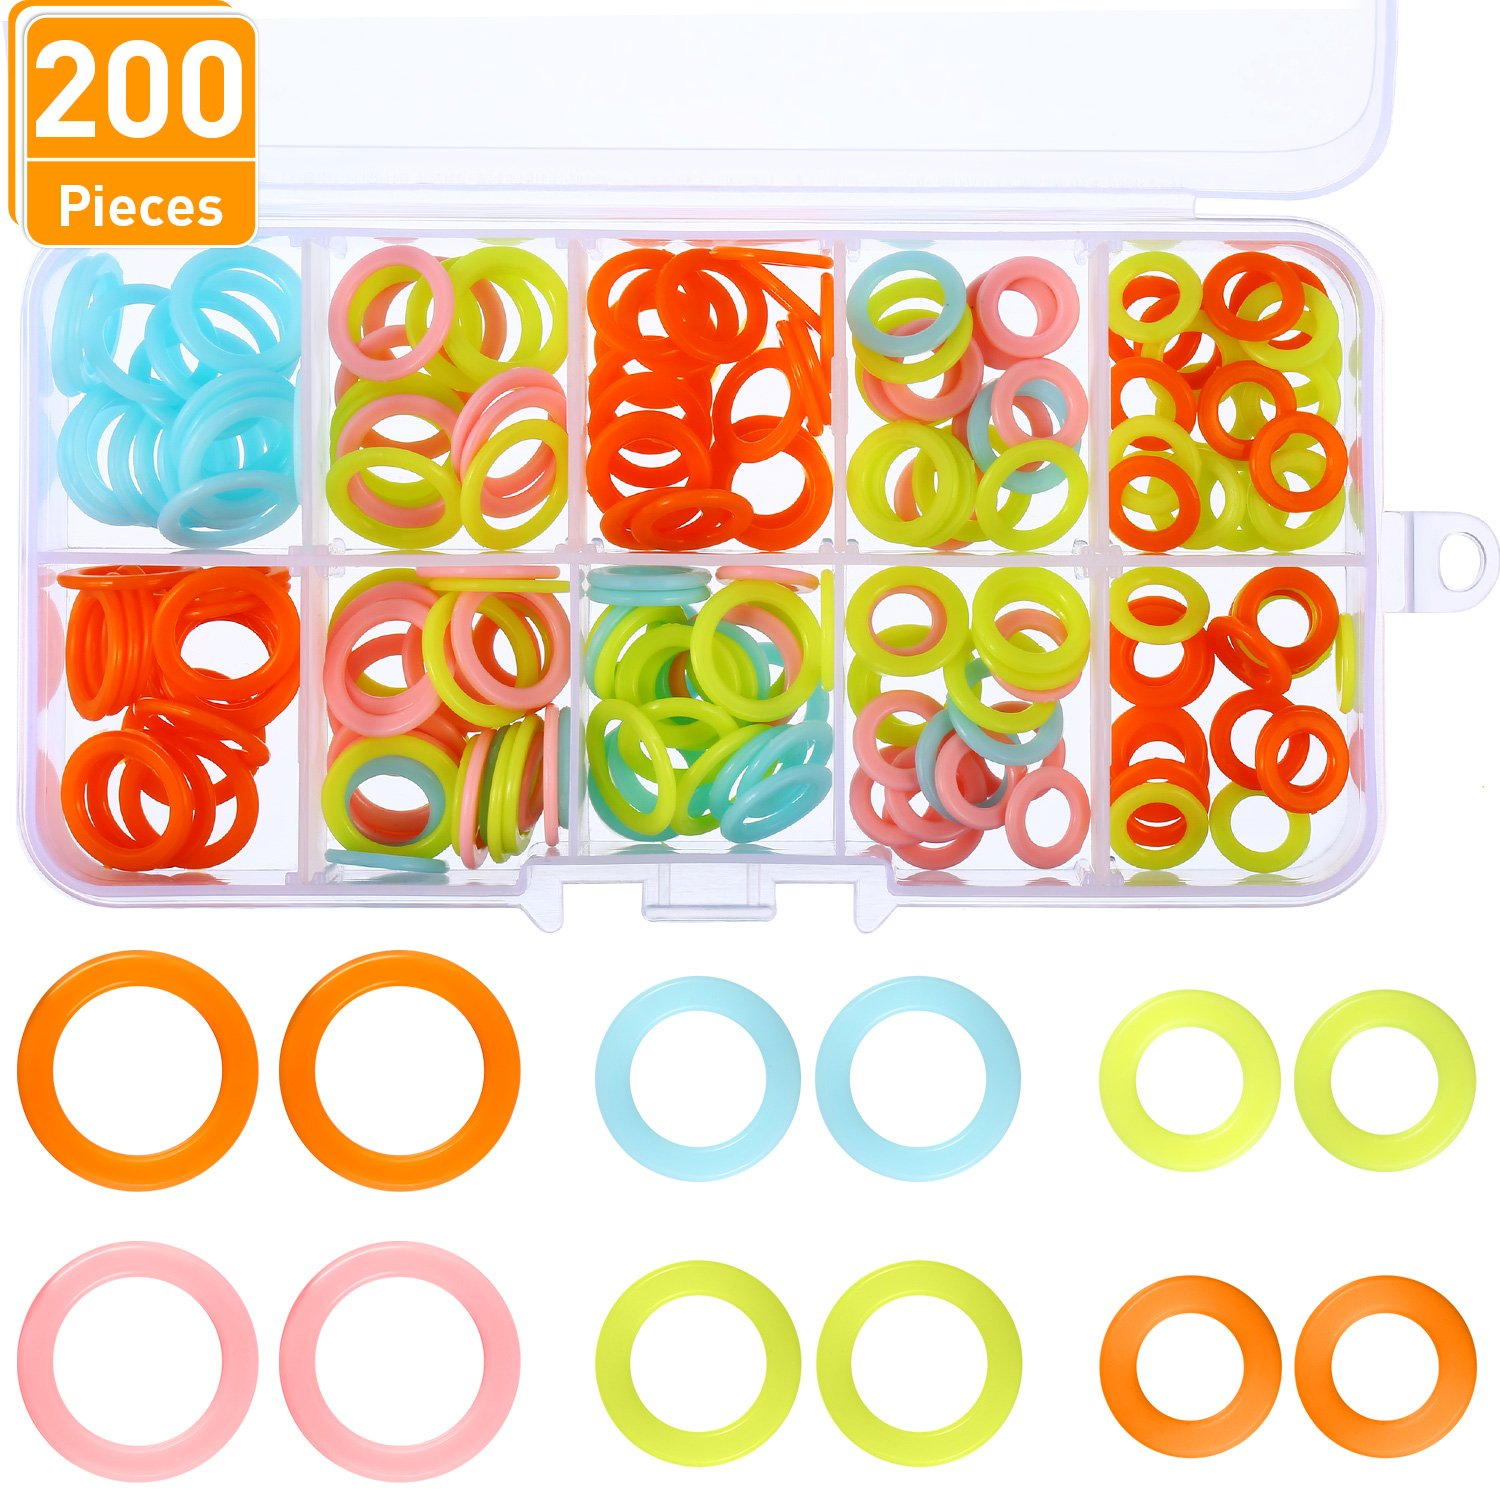 Blulu 200 Pieces Knitting Marker Rings Stitch Rings Markers Crochet Locking Plastic Storage Box, 3 Sizes, Assorted Colors